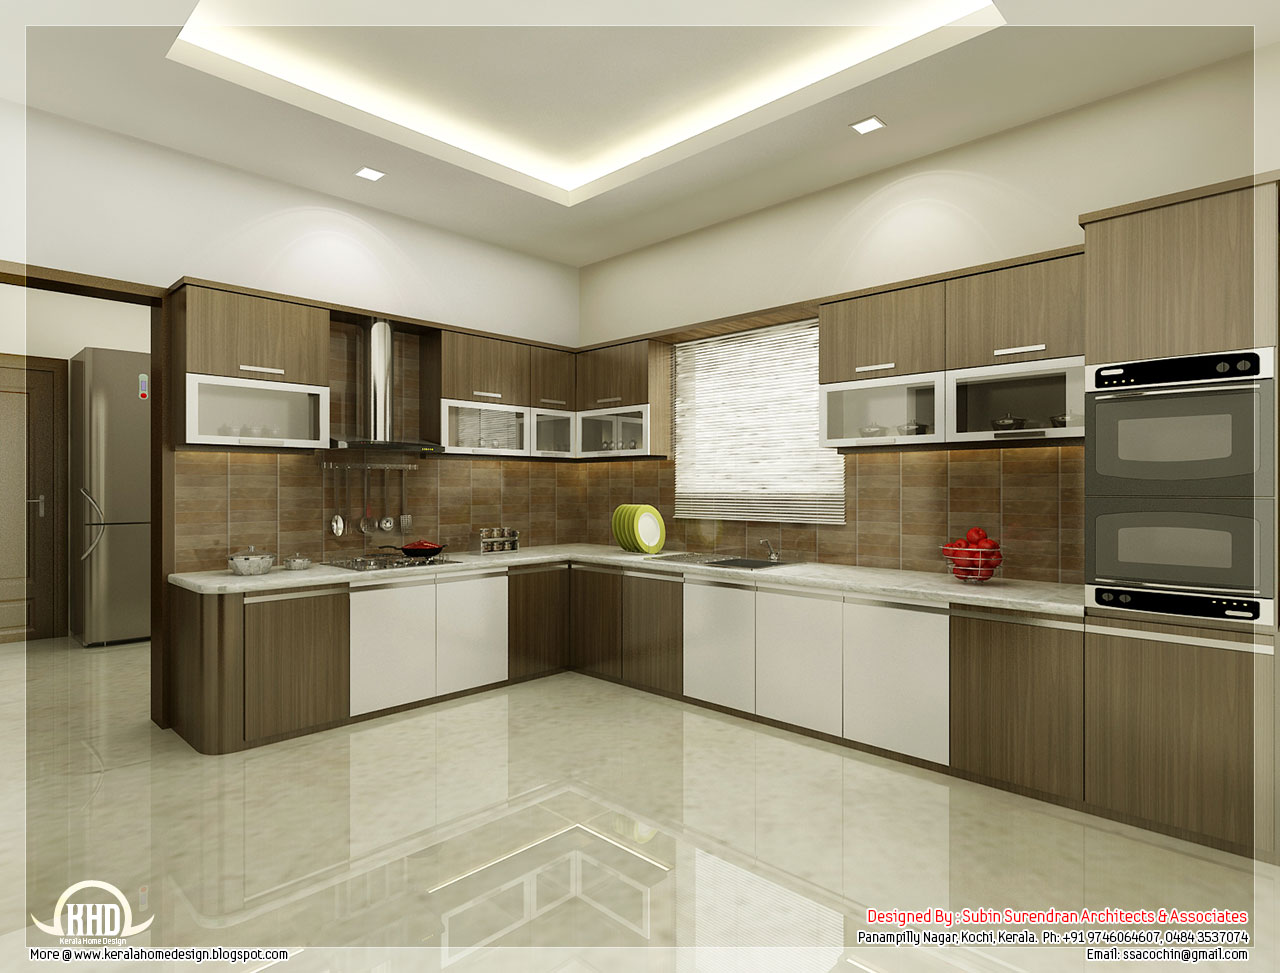 Amazing Kitchen interior design 1280 x 973 · 182 kB · jpeg